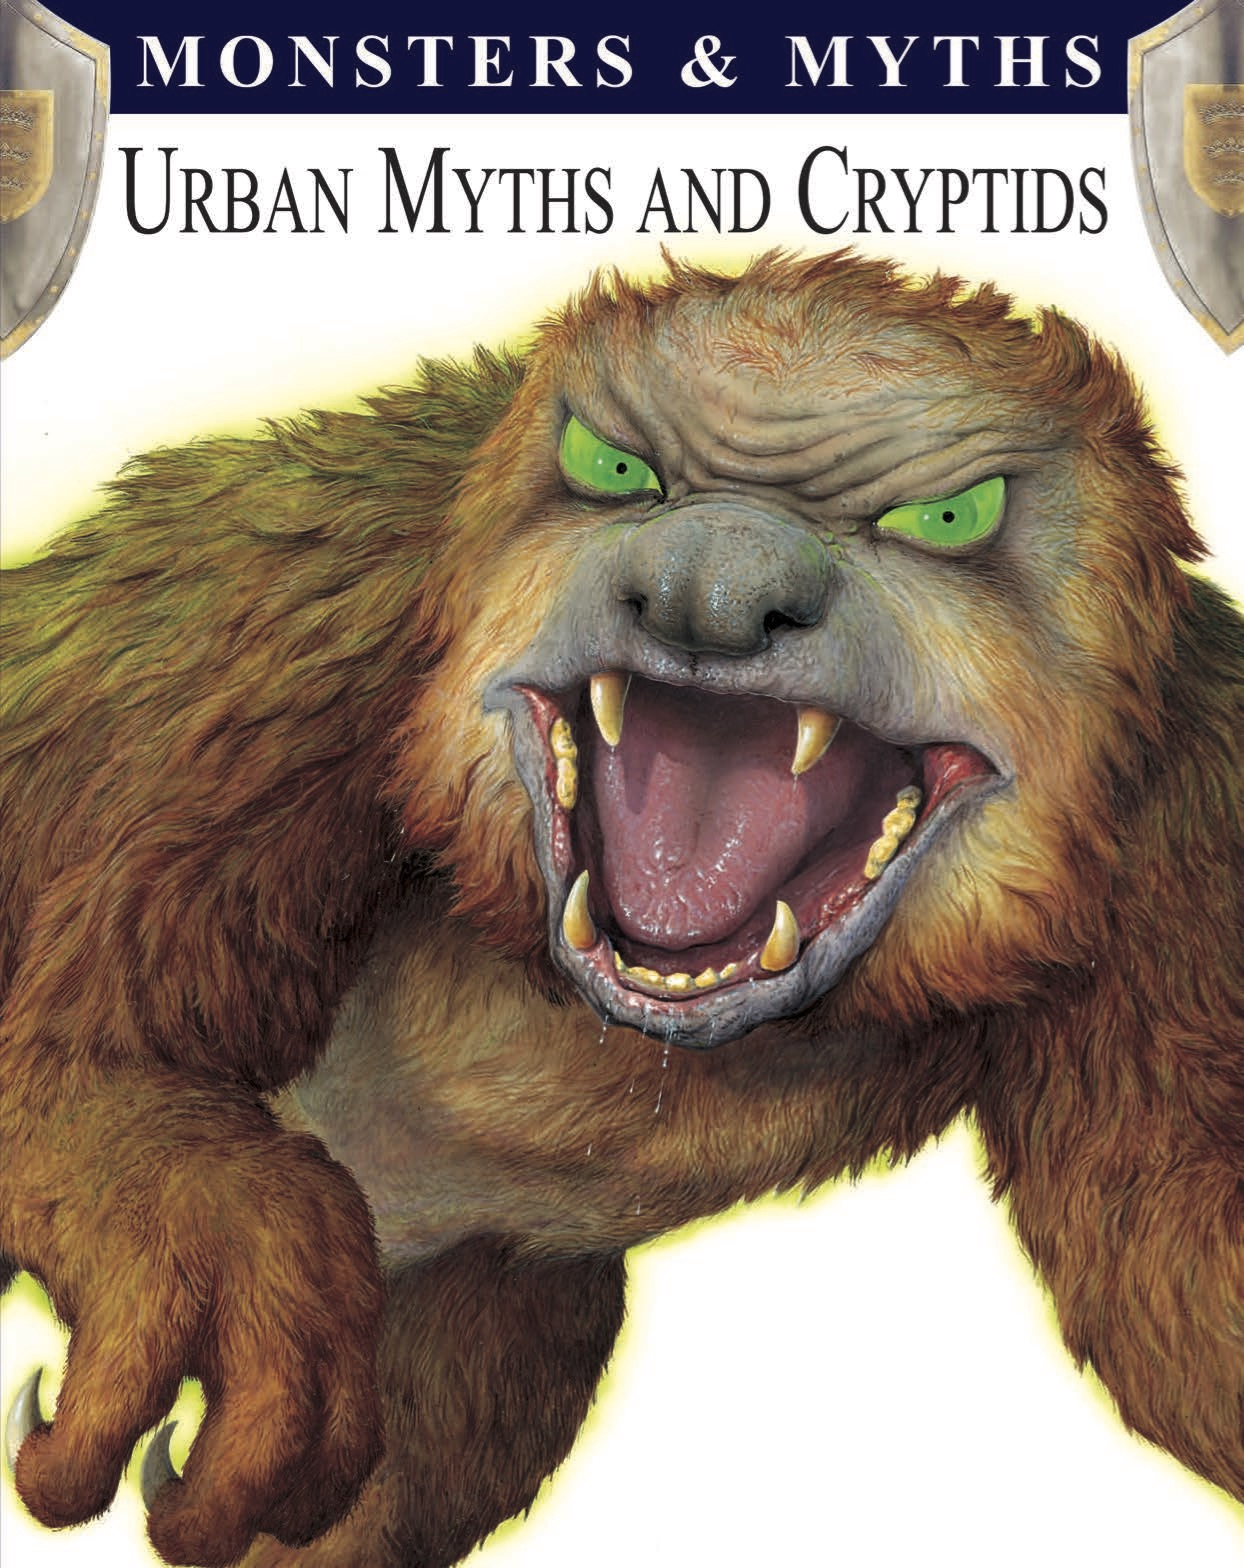 Monsters and Myths: Urban Myths and Cryptids